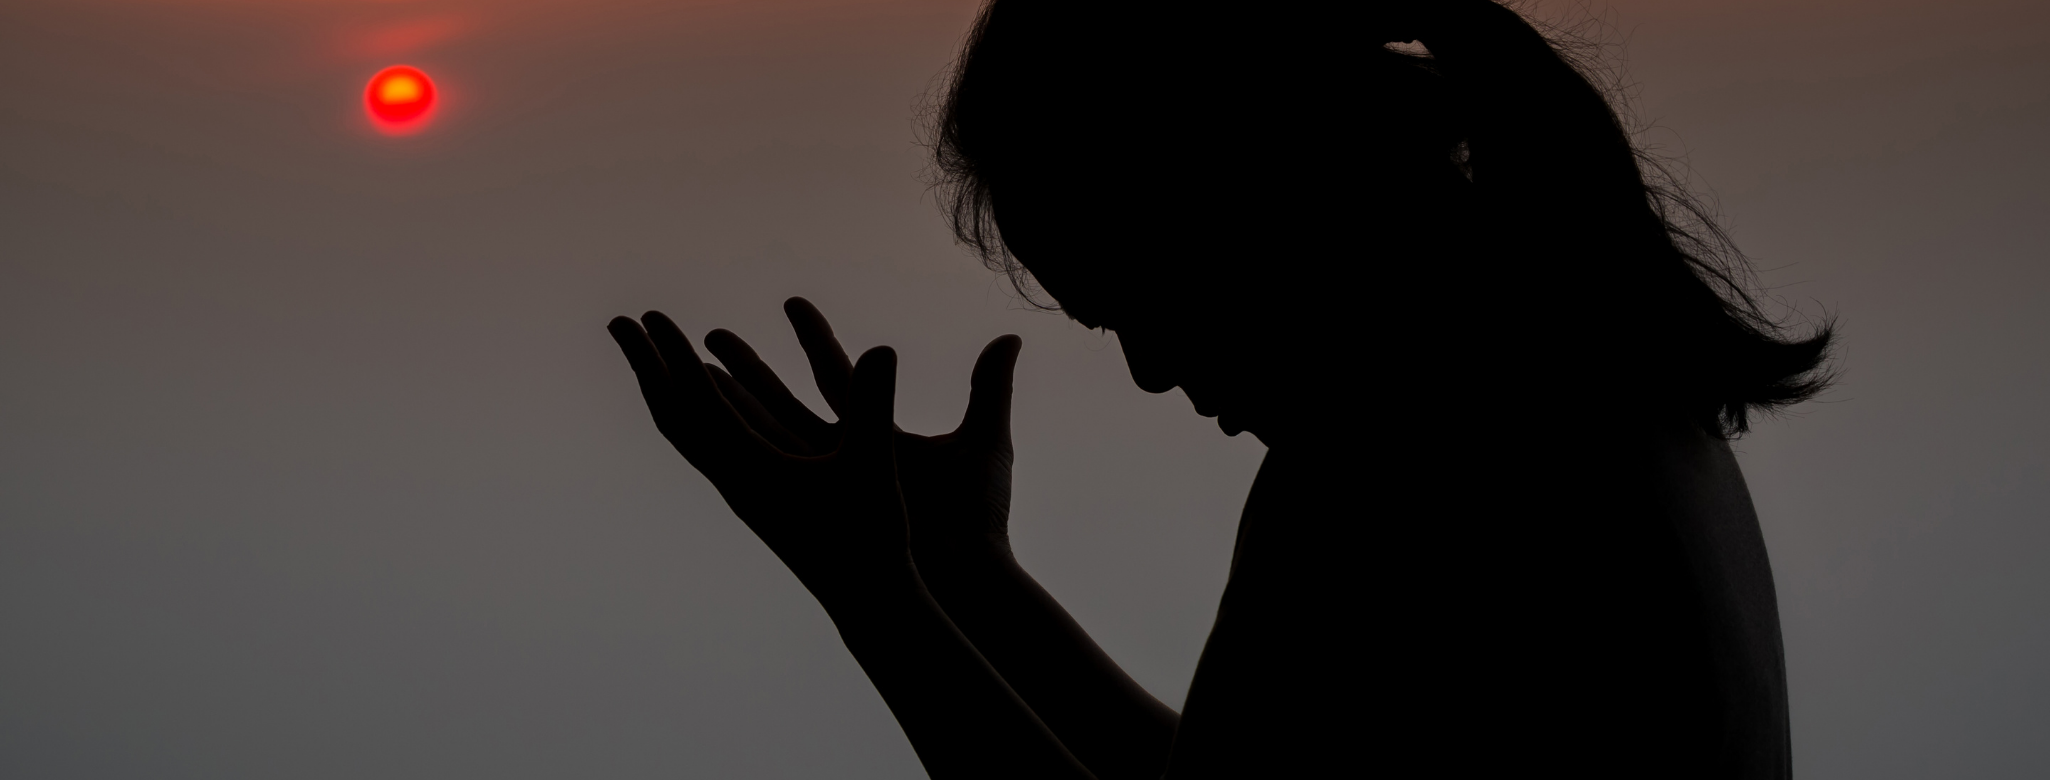 Woman at sunset with head bowed in prayer or meditation